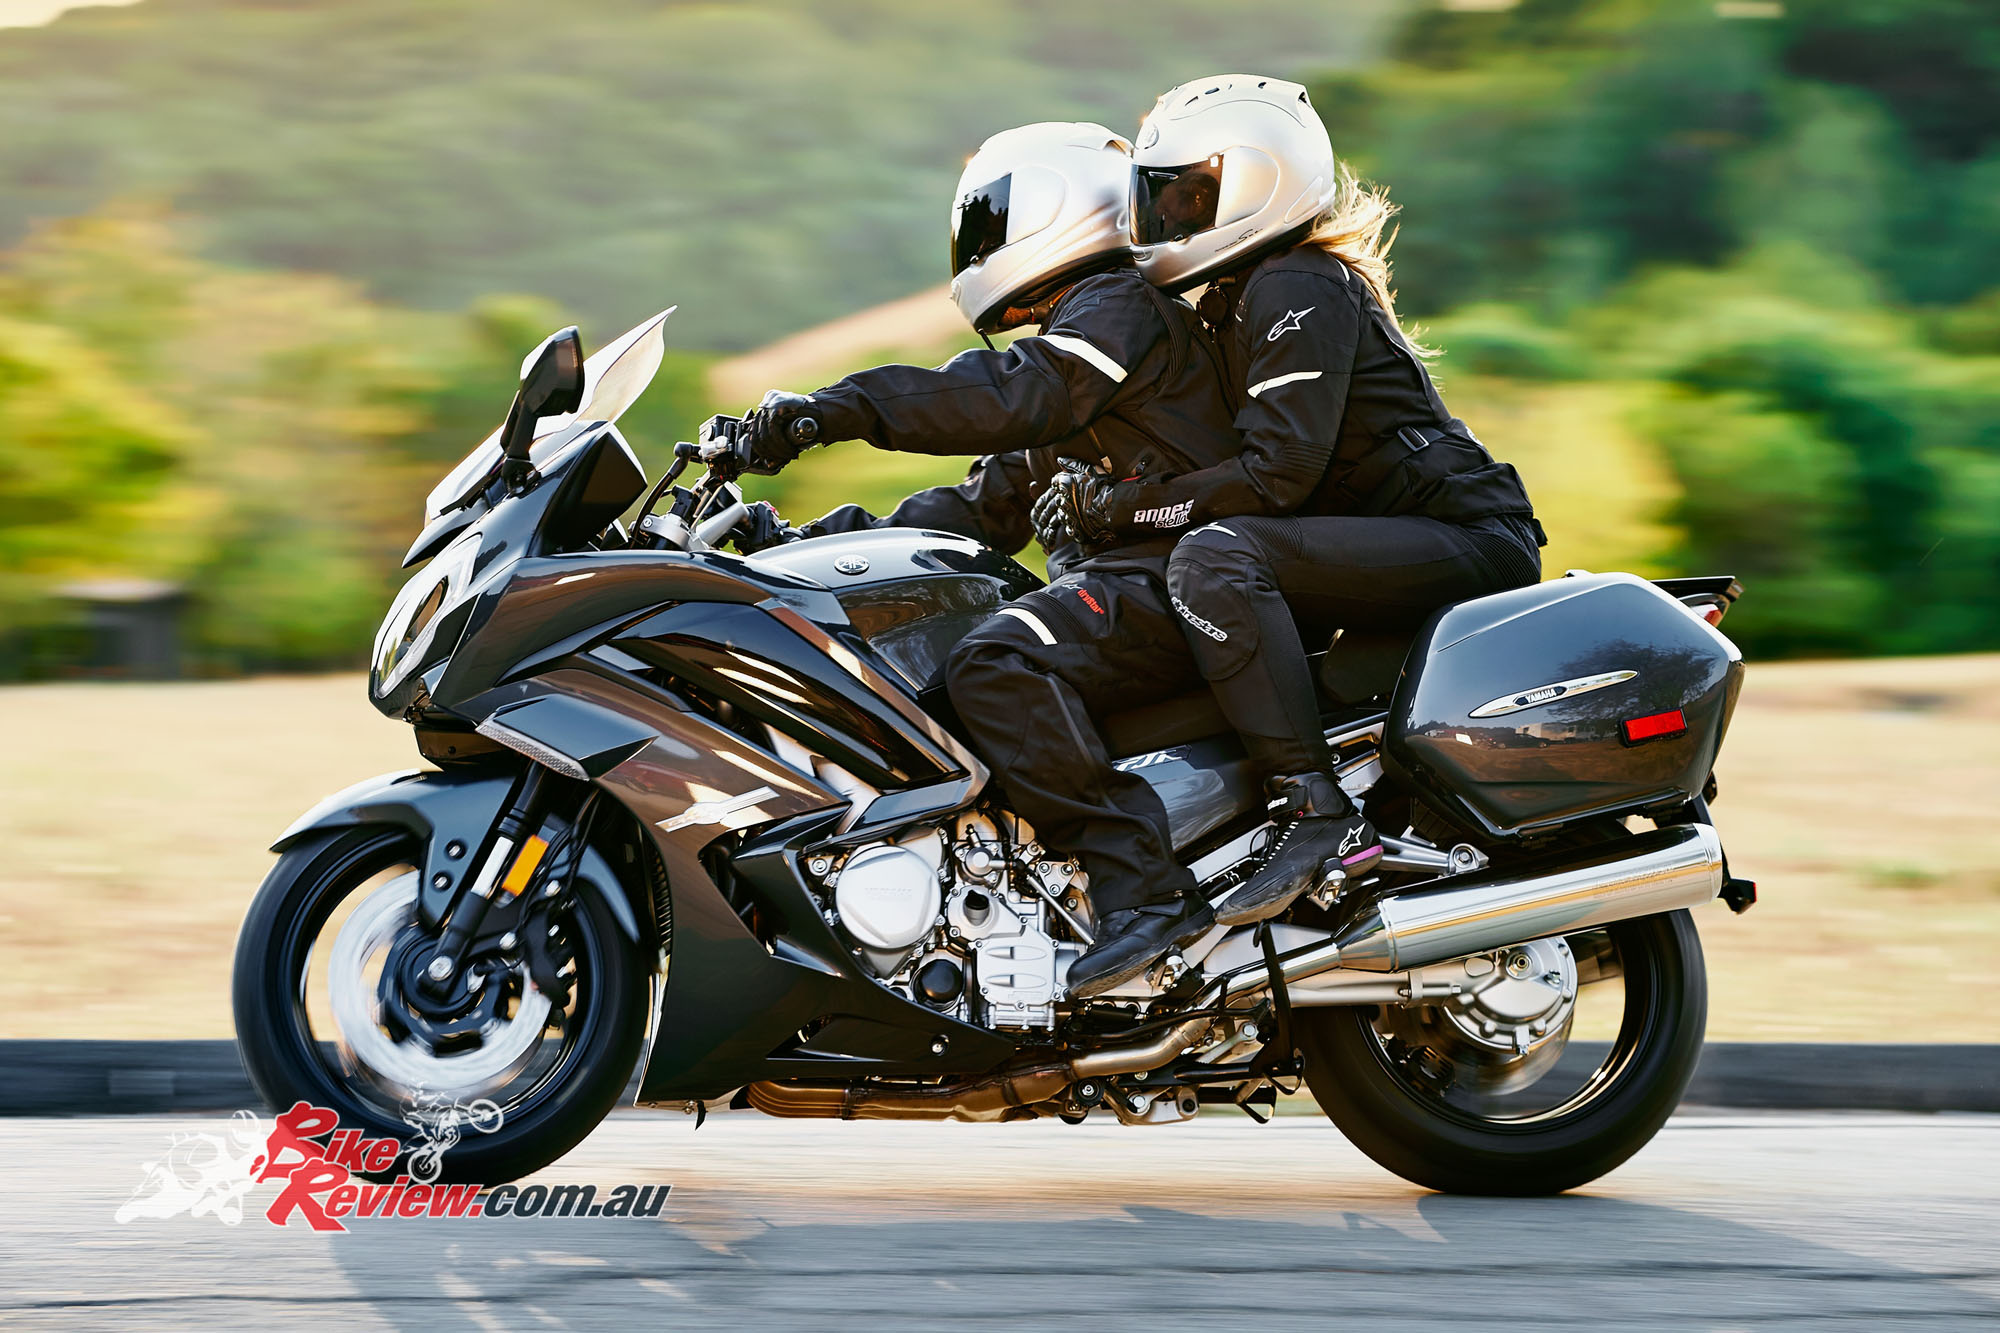 Yamaha Rt Review